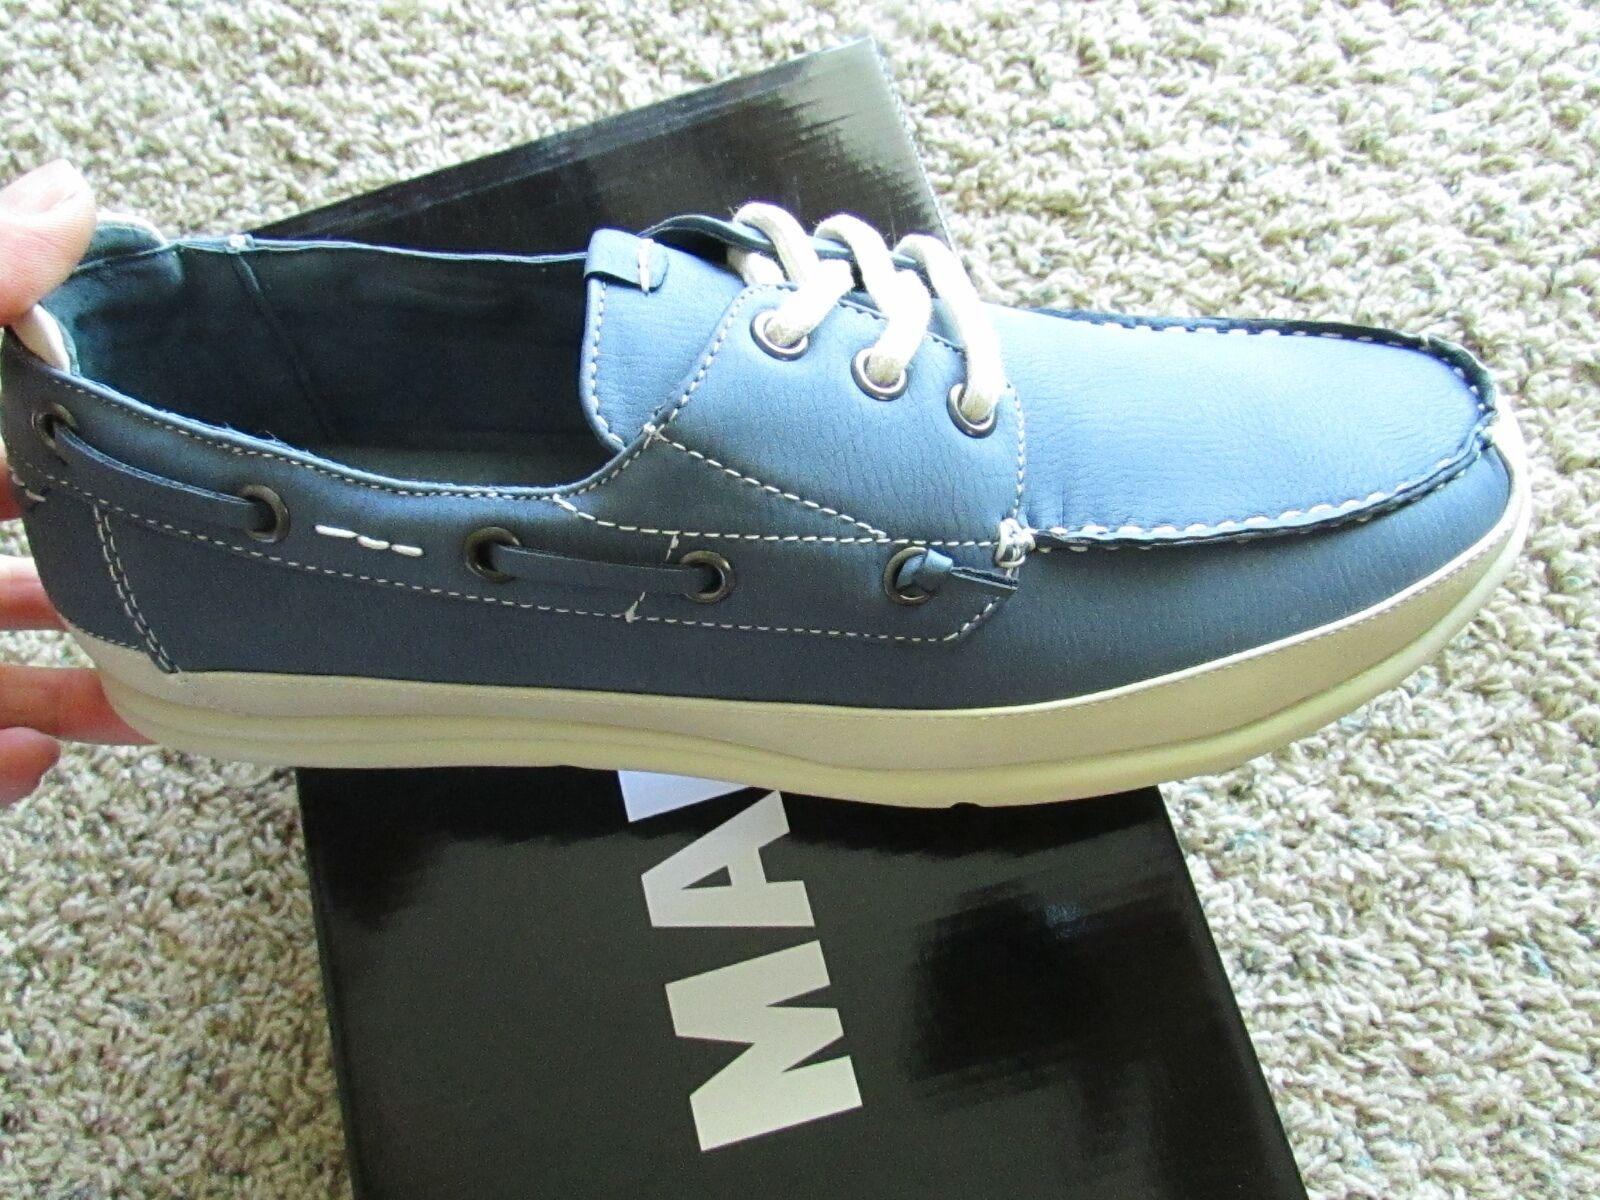 7cc7fec1 Steve Madden Azul Boat Azul Madden Casual Zapatos for Hombre for sale fc890a